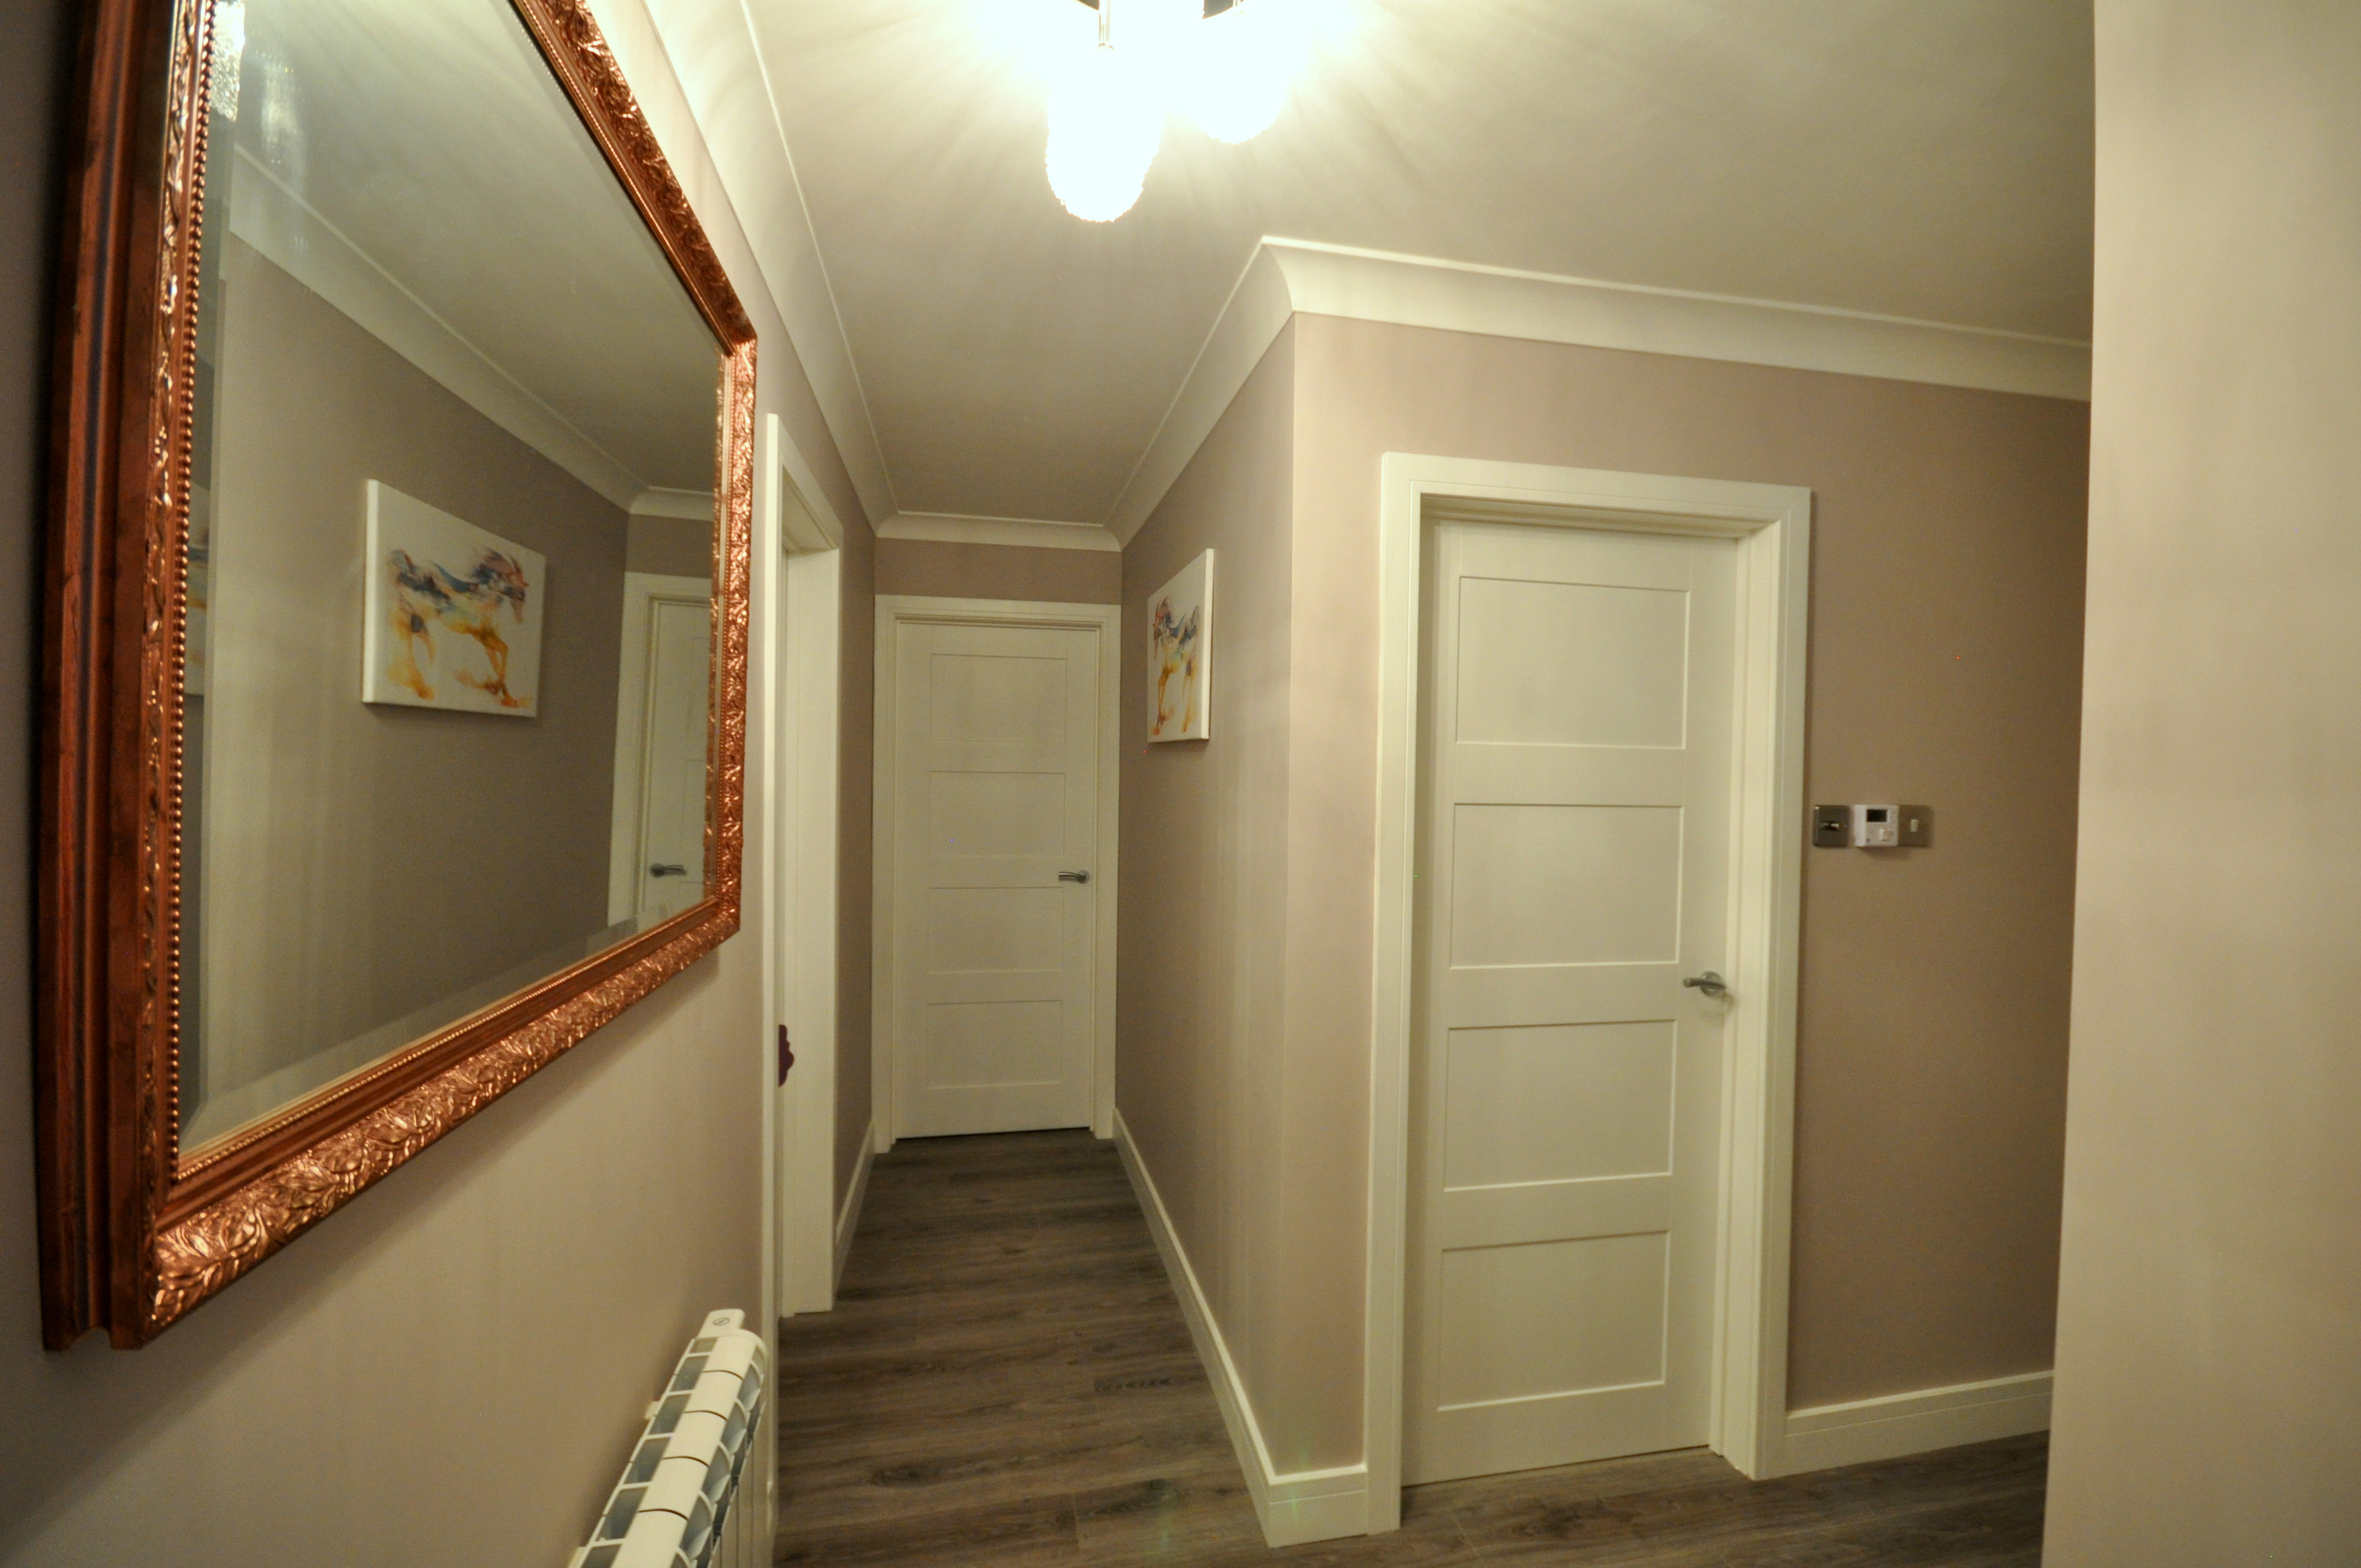 Hall refurbishment with new electrics and new flooring in Dorset